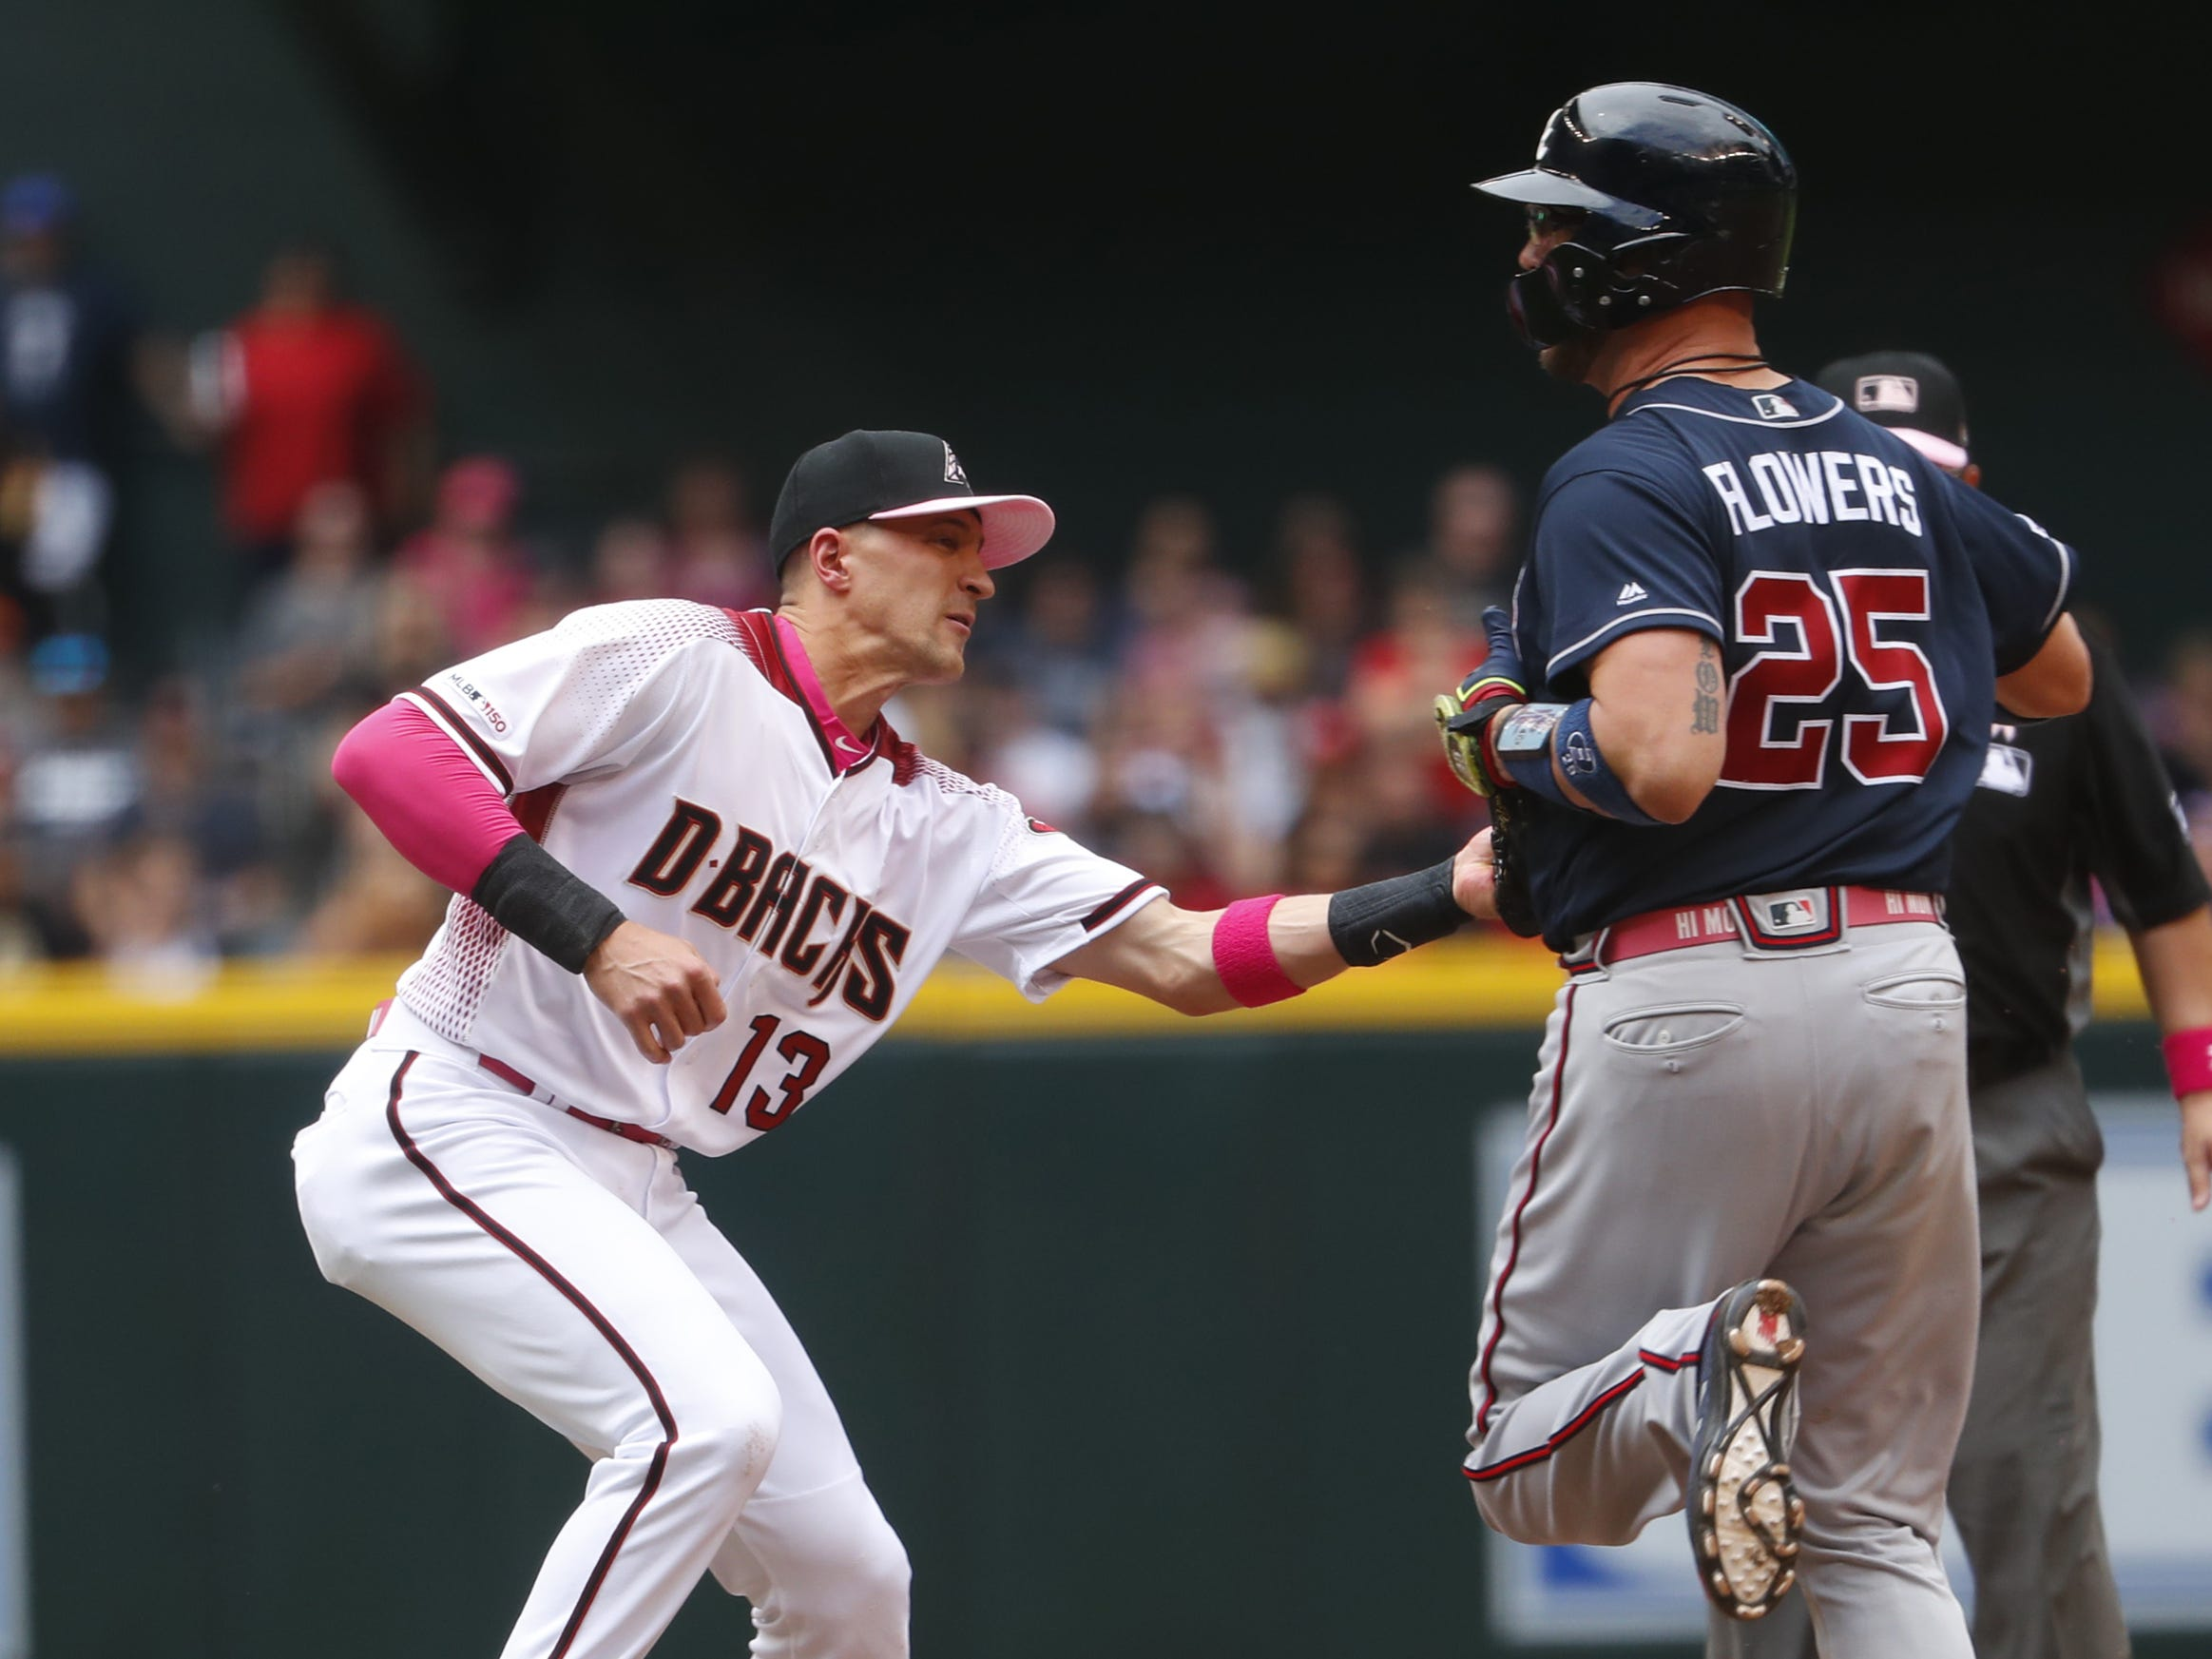 Diamondbacks' Nick Ahmed (13) records an out on Braves' Tyler Flowers (25) after he's caught in a pickle during the third inning at Chase Field in Phoenix, Ariz. on May 12, 2019.